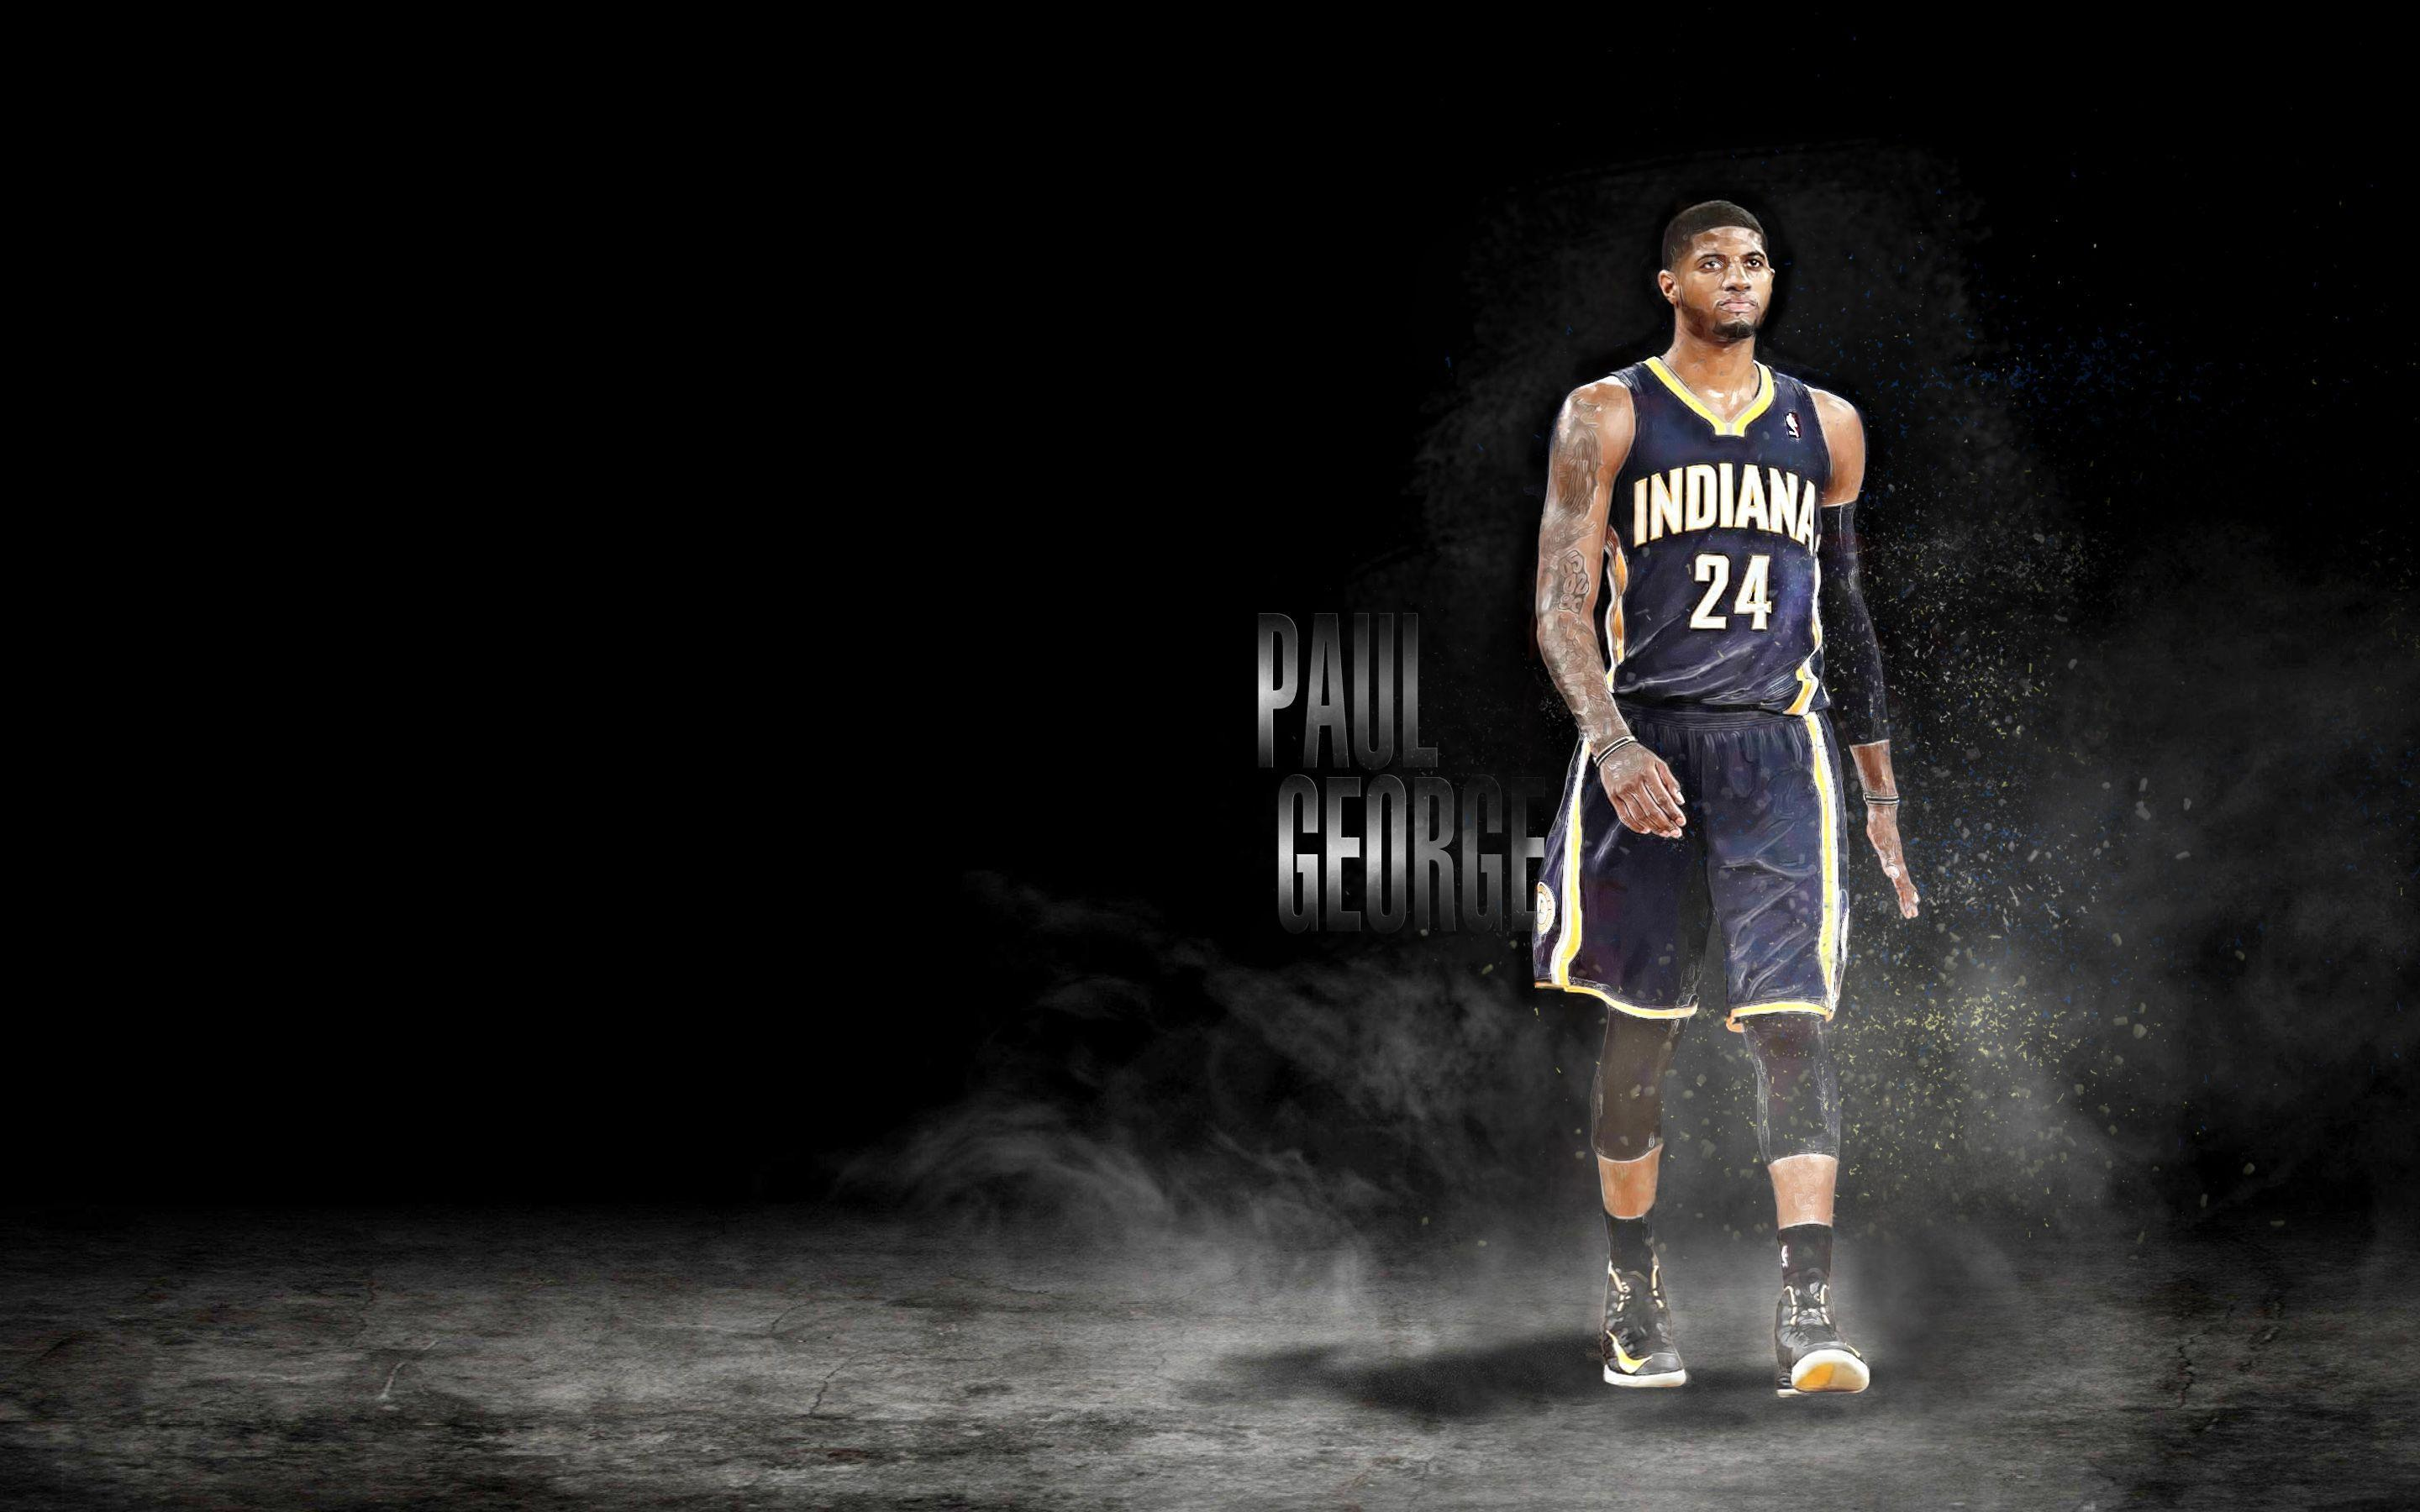 Wallpaper Nba Player